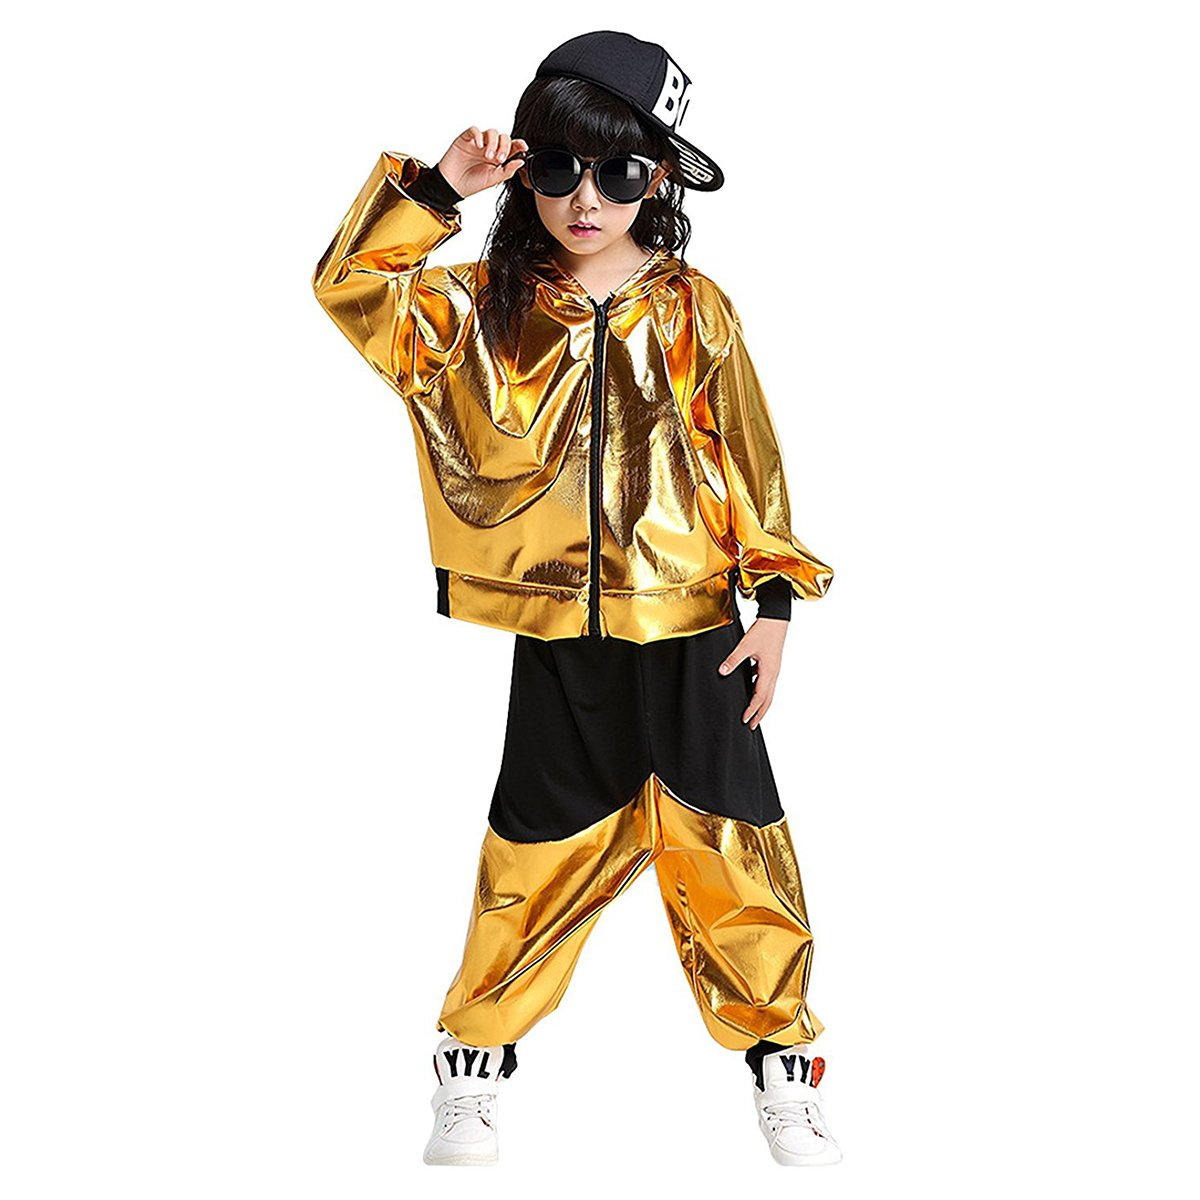 DREAMOWL Kids Dance Costumes Hip-hop Jazz Performance Halloween Paint Hooded Outfits (Gold, 6X-8)